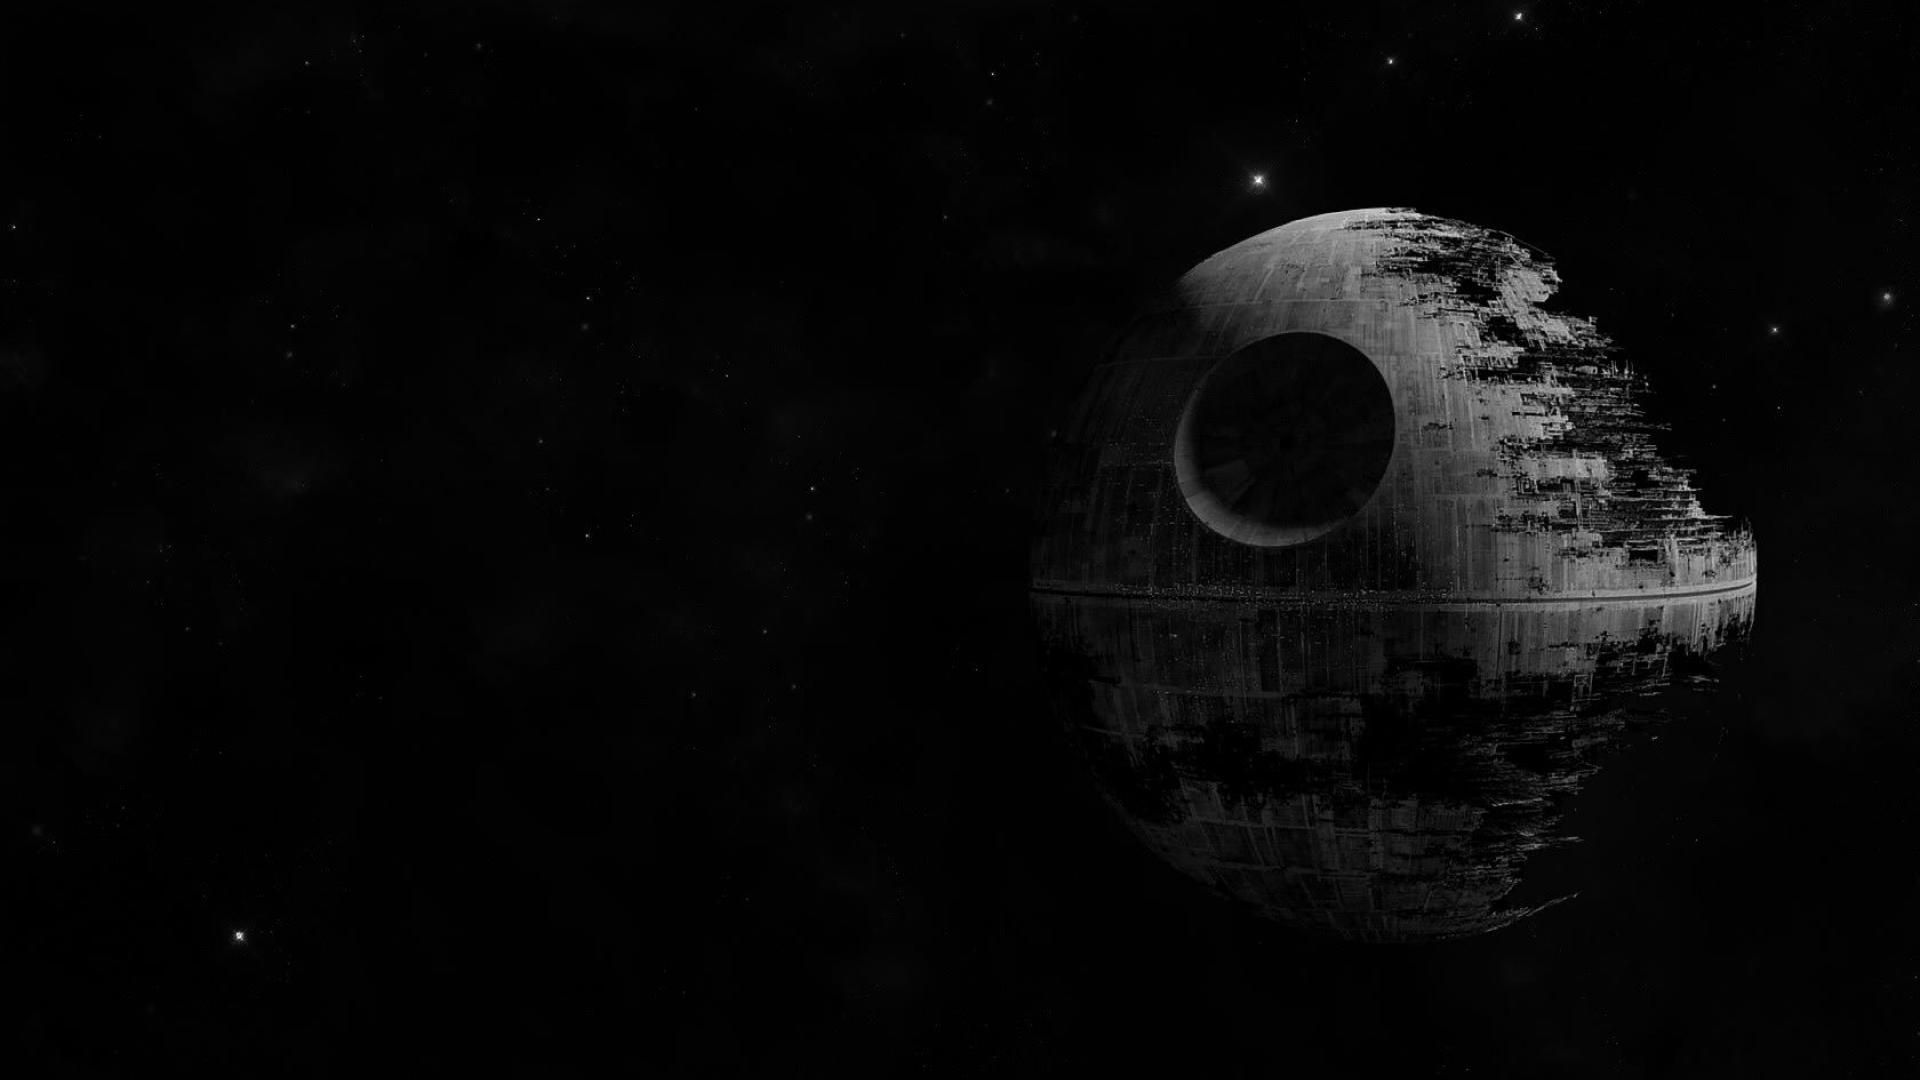 1920x1080 - 1920x1080 HD Wallpapers Star Wars 9